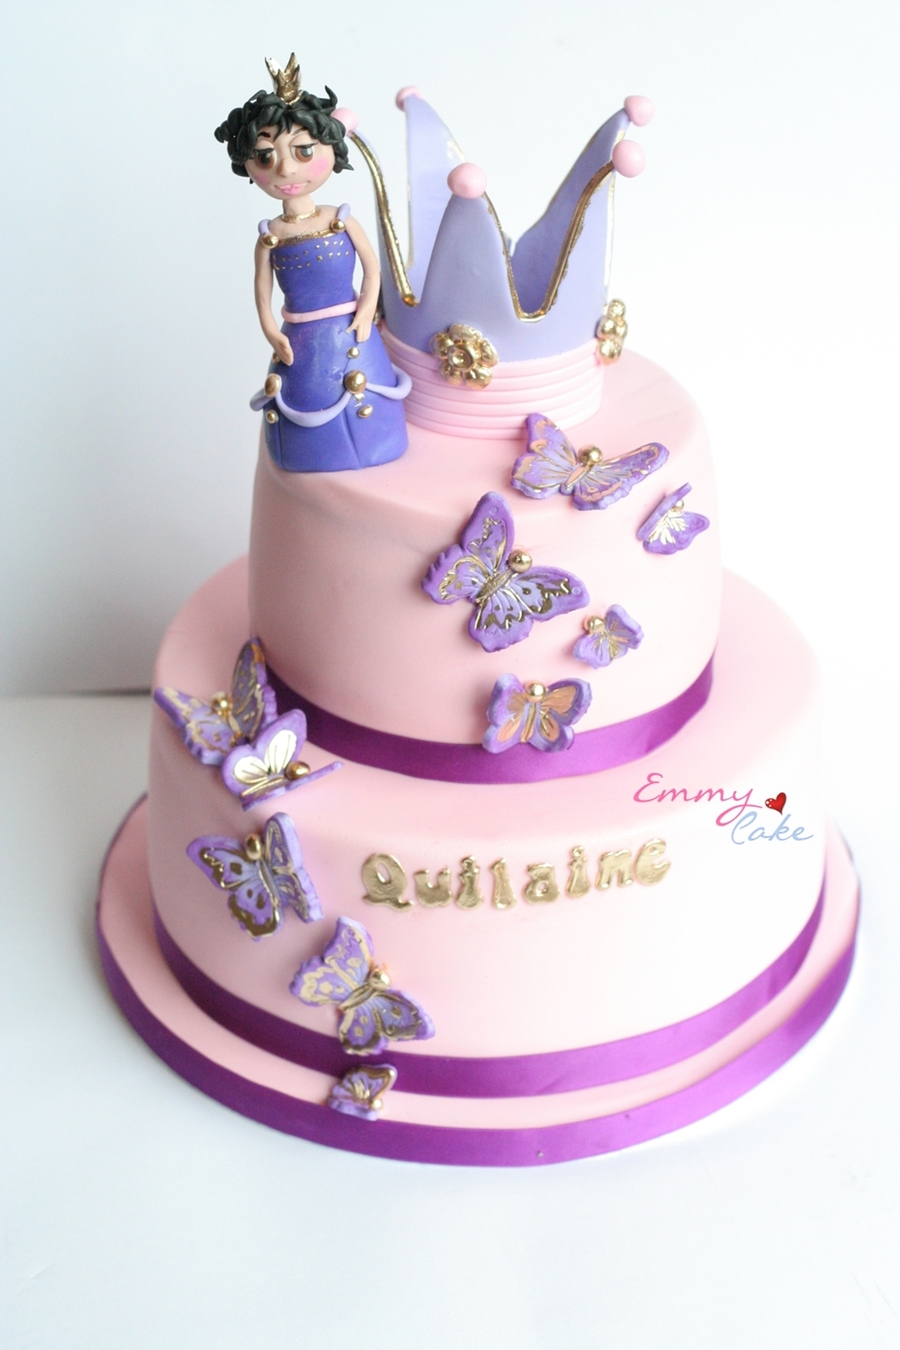 Birthday Cake With A Princess And She Also Likes Butterflies So I Put Butterflies To Get A Girly Effect on Cake Central